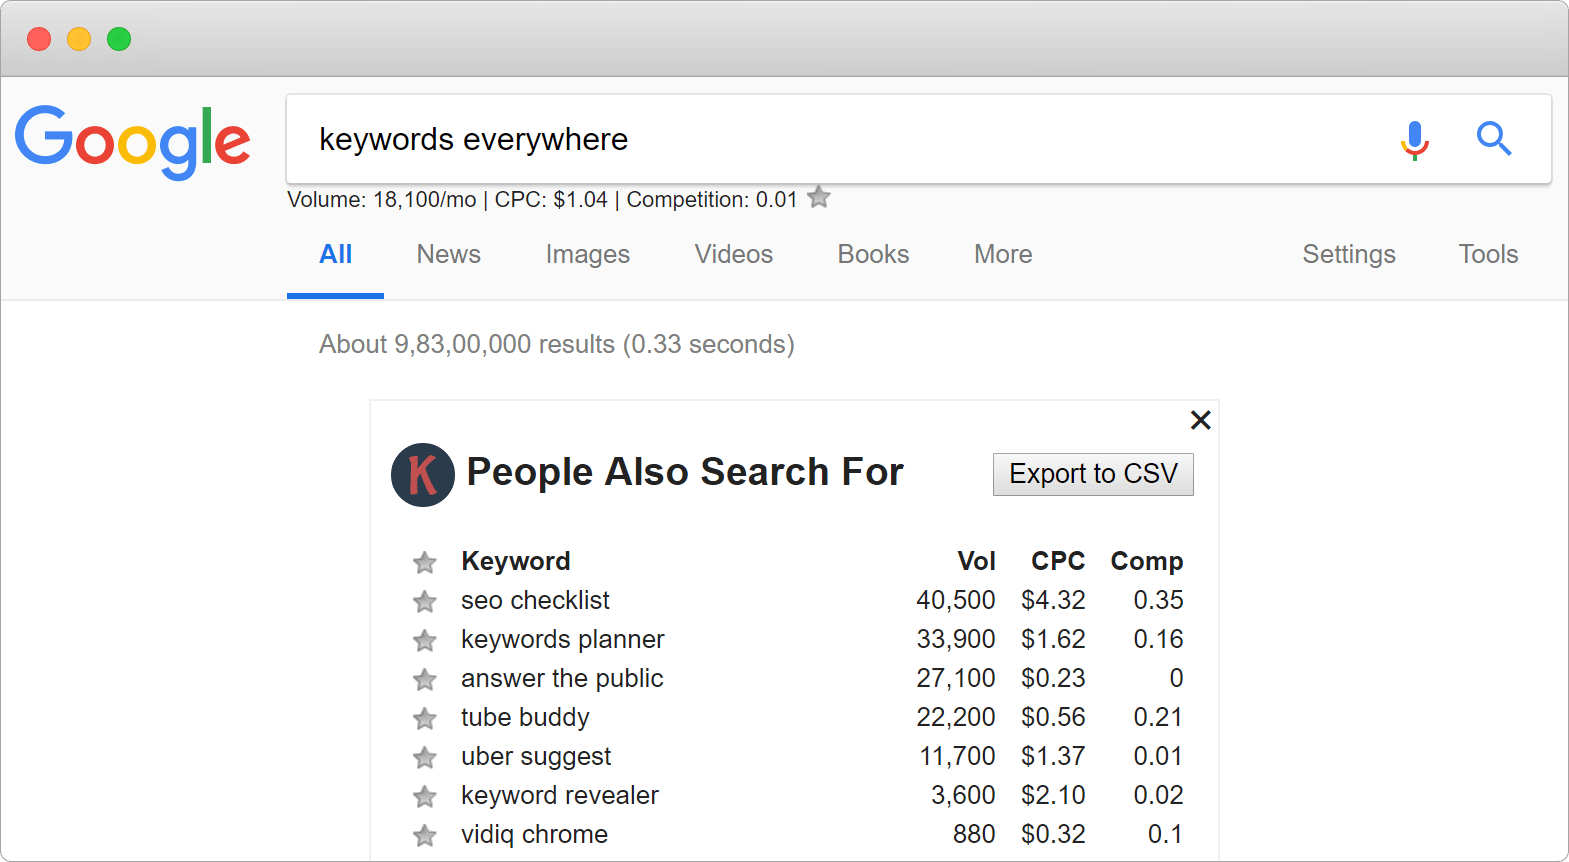 Keywords Everywhere browser add-on to become a paid tool ...